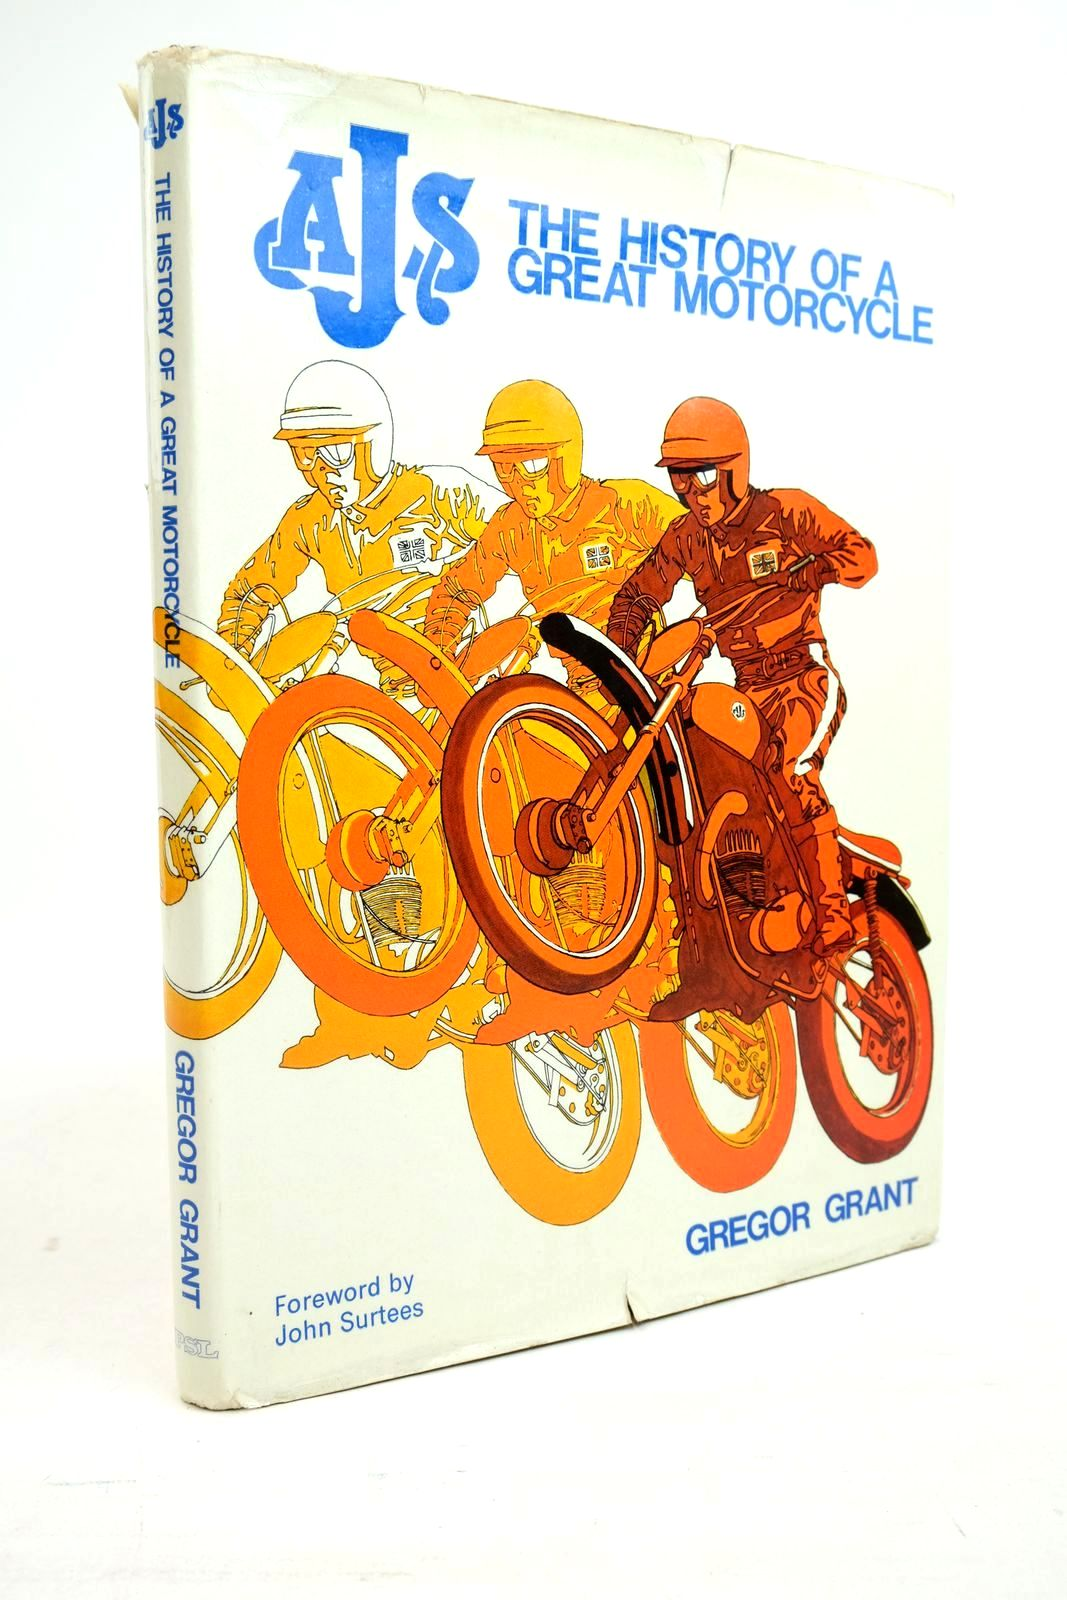 Photo of AJS THE HISTORY OF A GREAT MOTORCYCLE written by Grant, Gregor published by Patrick Stephens (STOCK CODE: 1321188)  for sale by Stella & Rose's Books